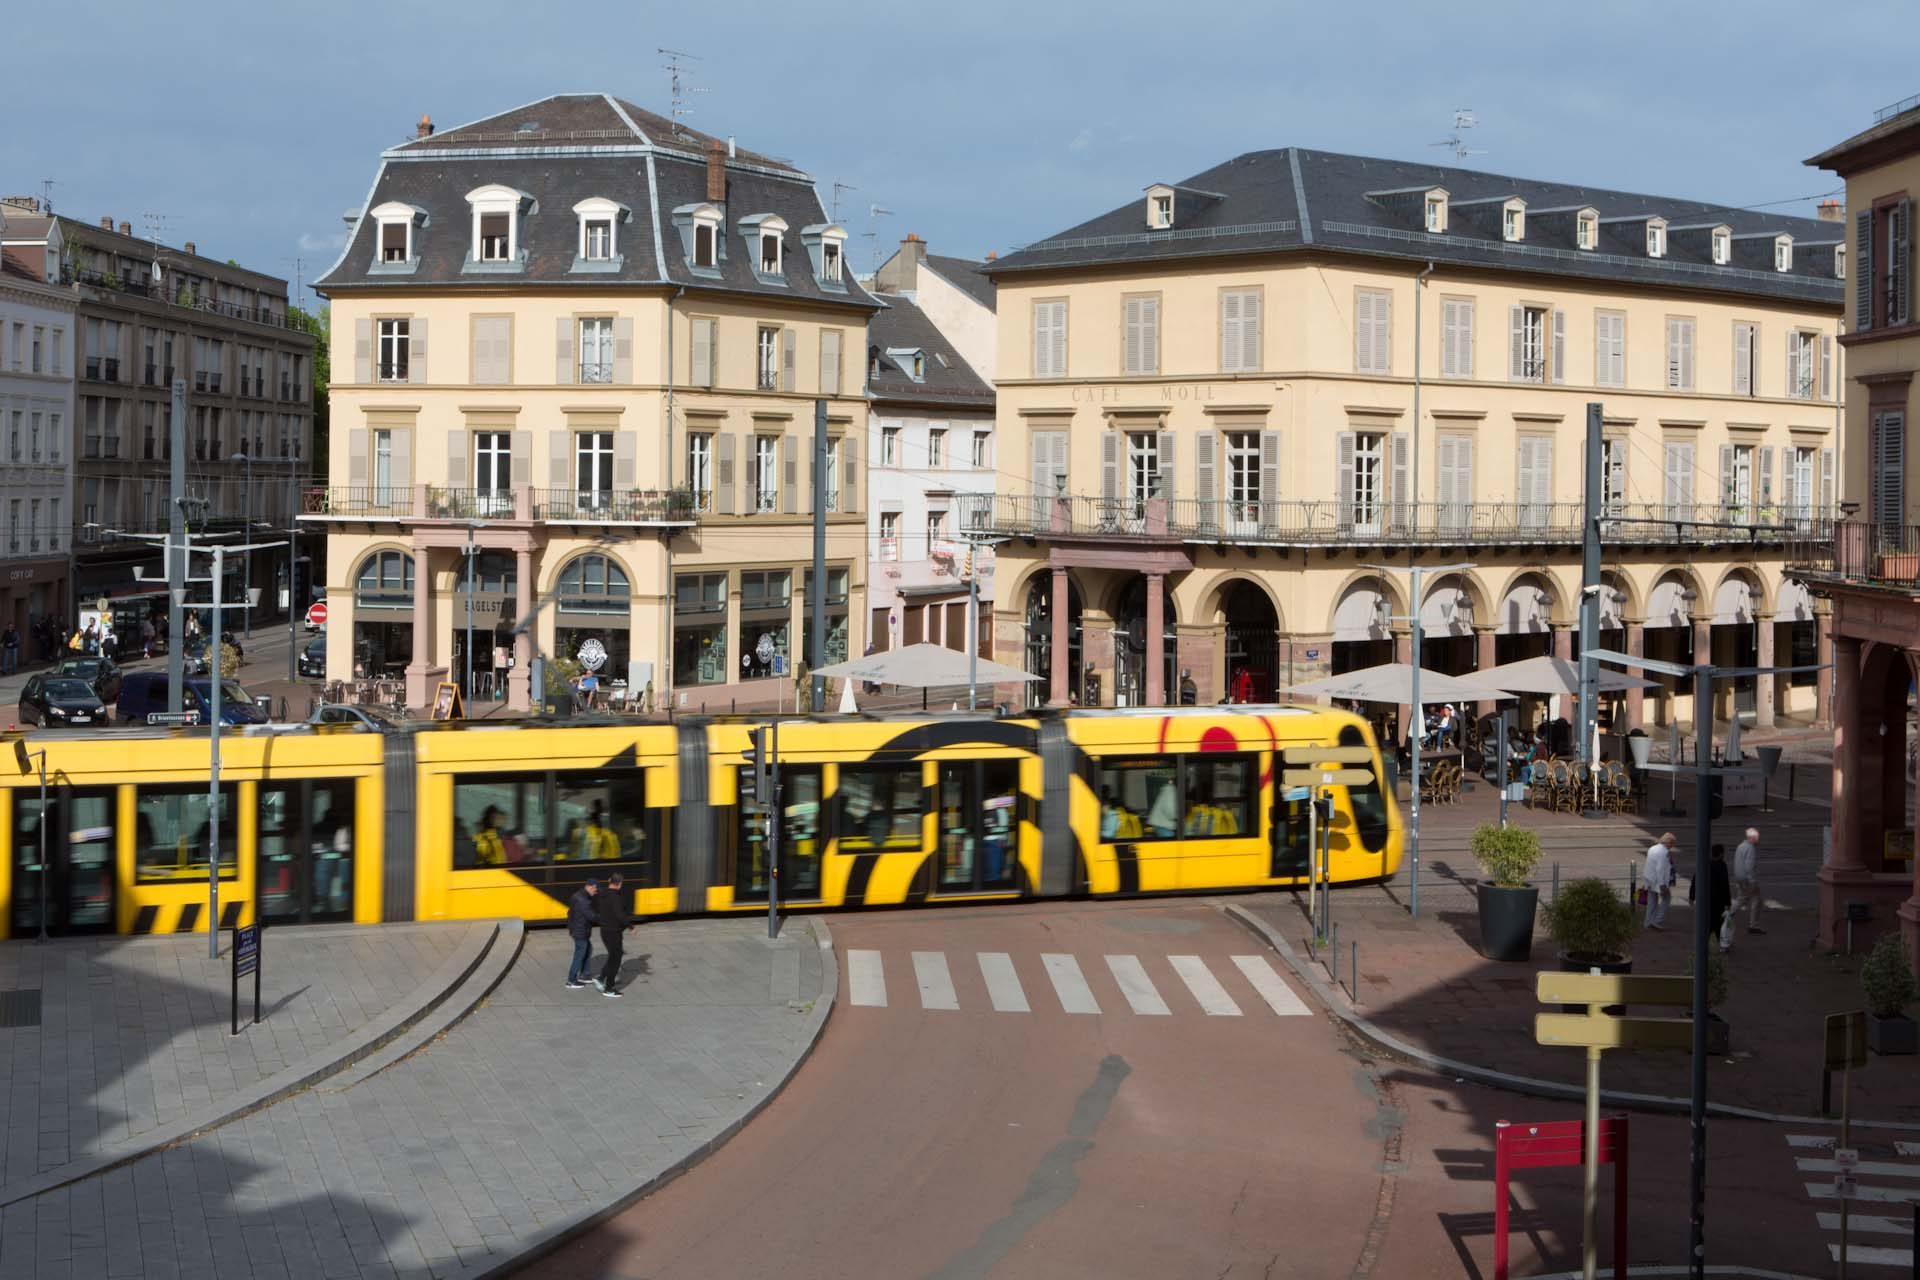 The city has been transformed over the last decade, with a new tram system and improved public spaces.